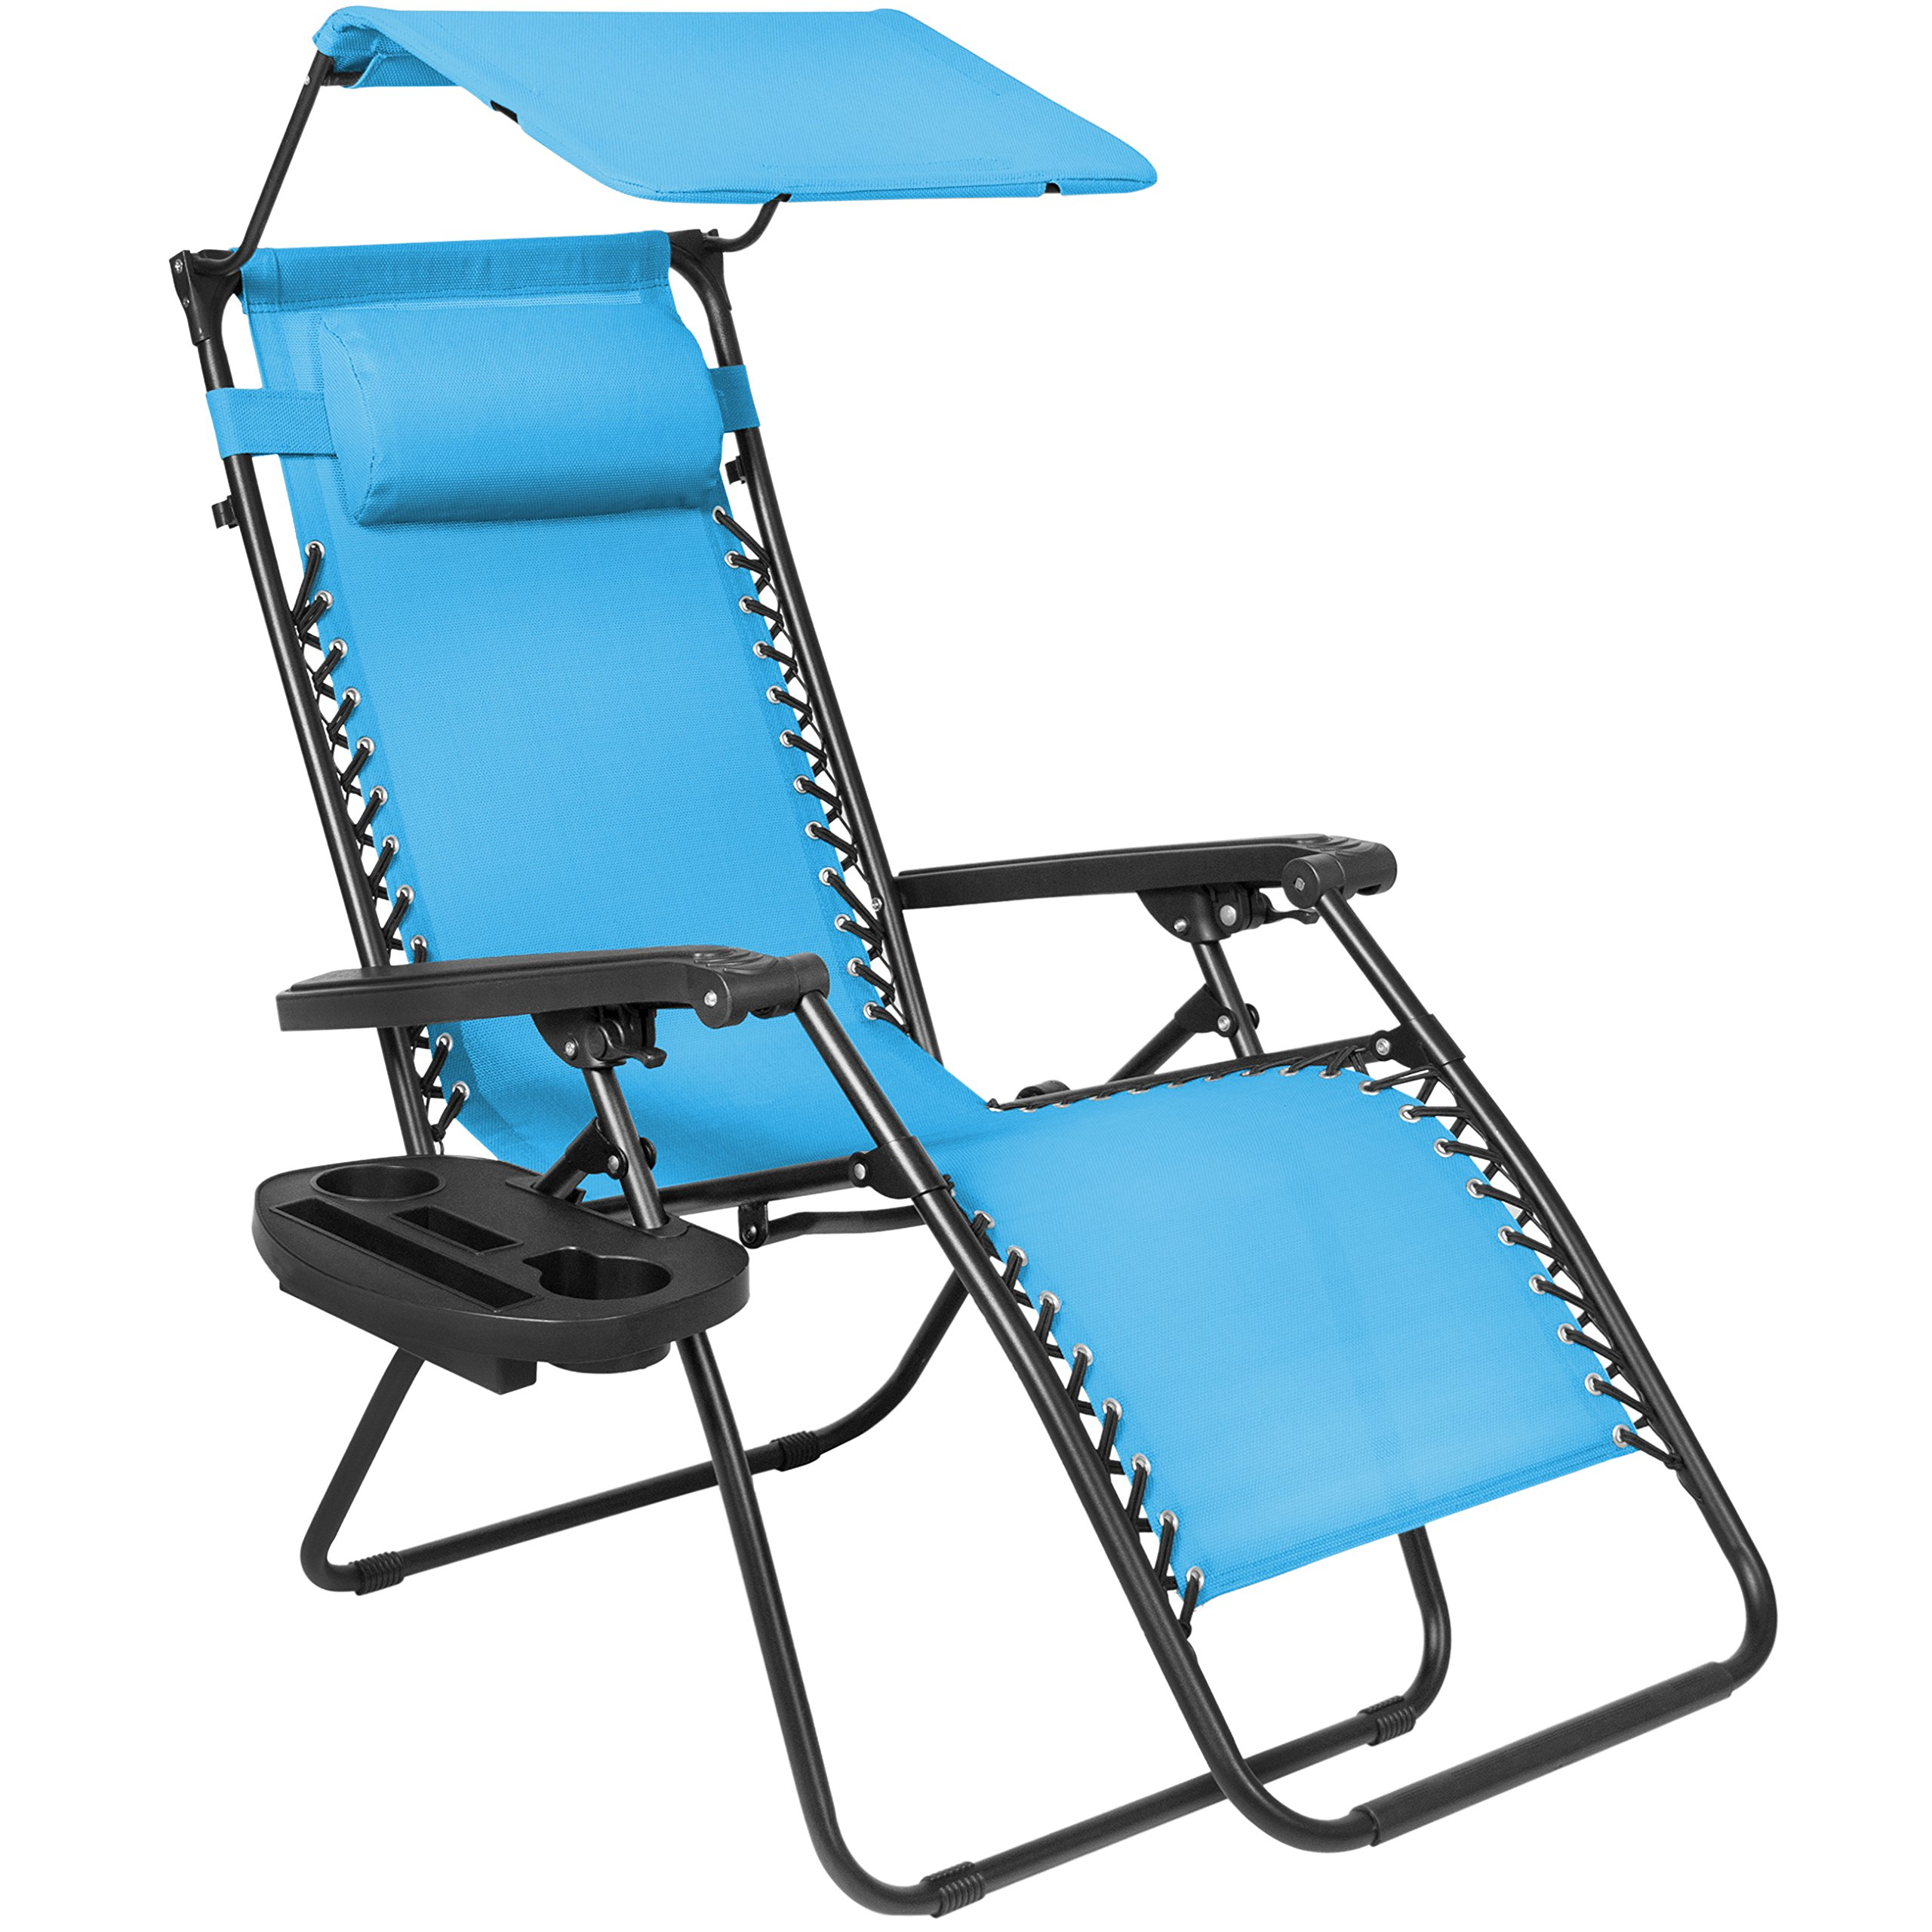 Best Choice Products Folding Zero Gravity Recliner Lounge Chair w/Canopy Shade & Magazine Cup Holder (Light Blue)